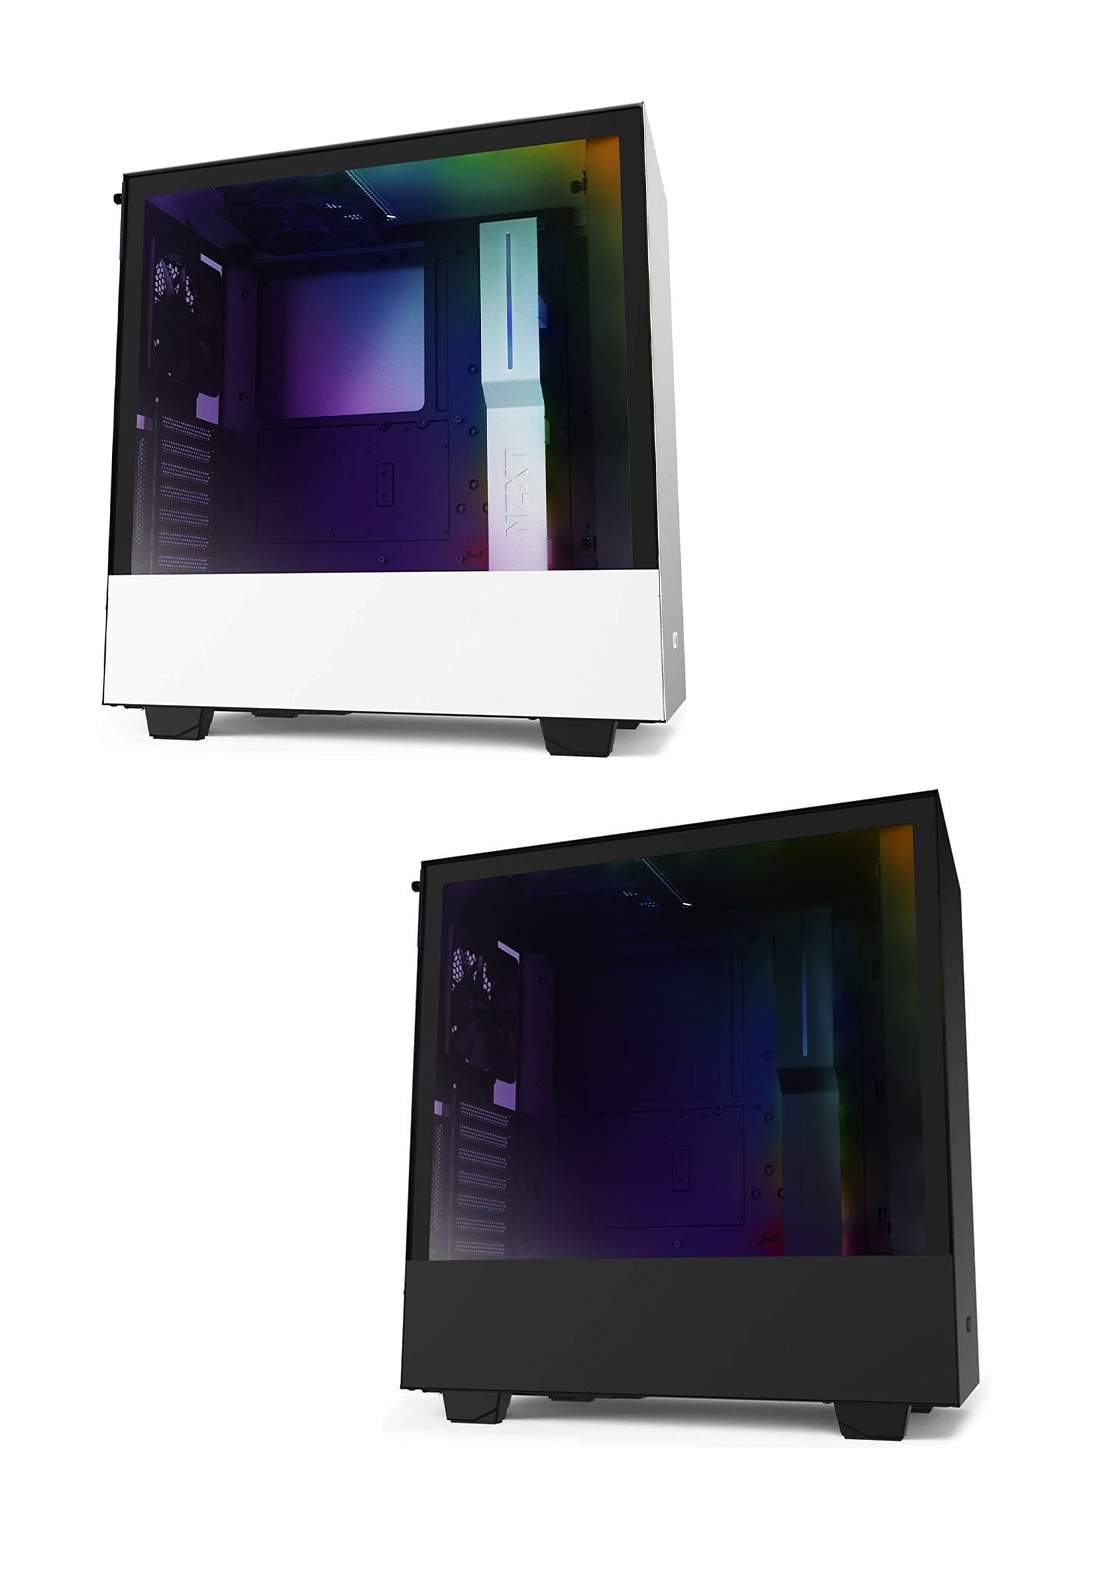 Nzxt H510i Atx Mid Tower Case كيس حاسبة